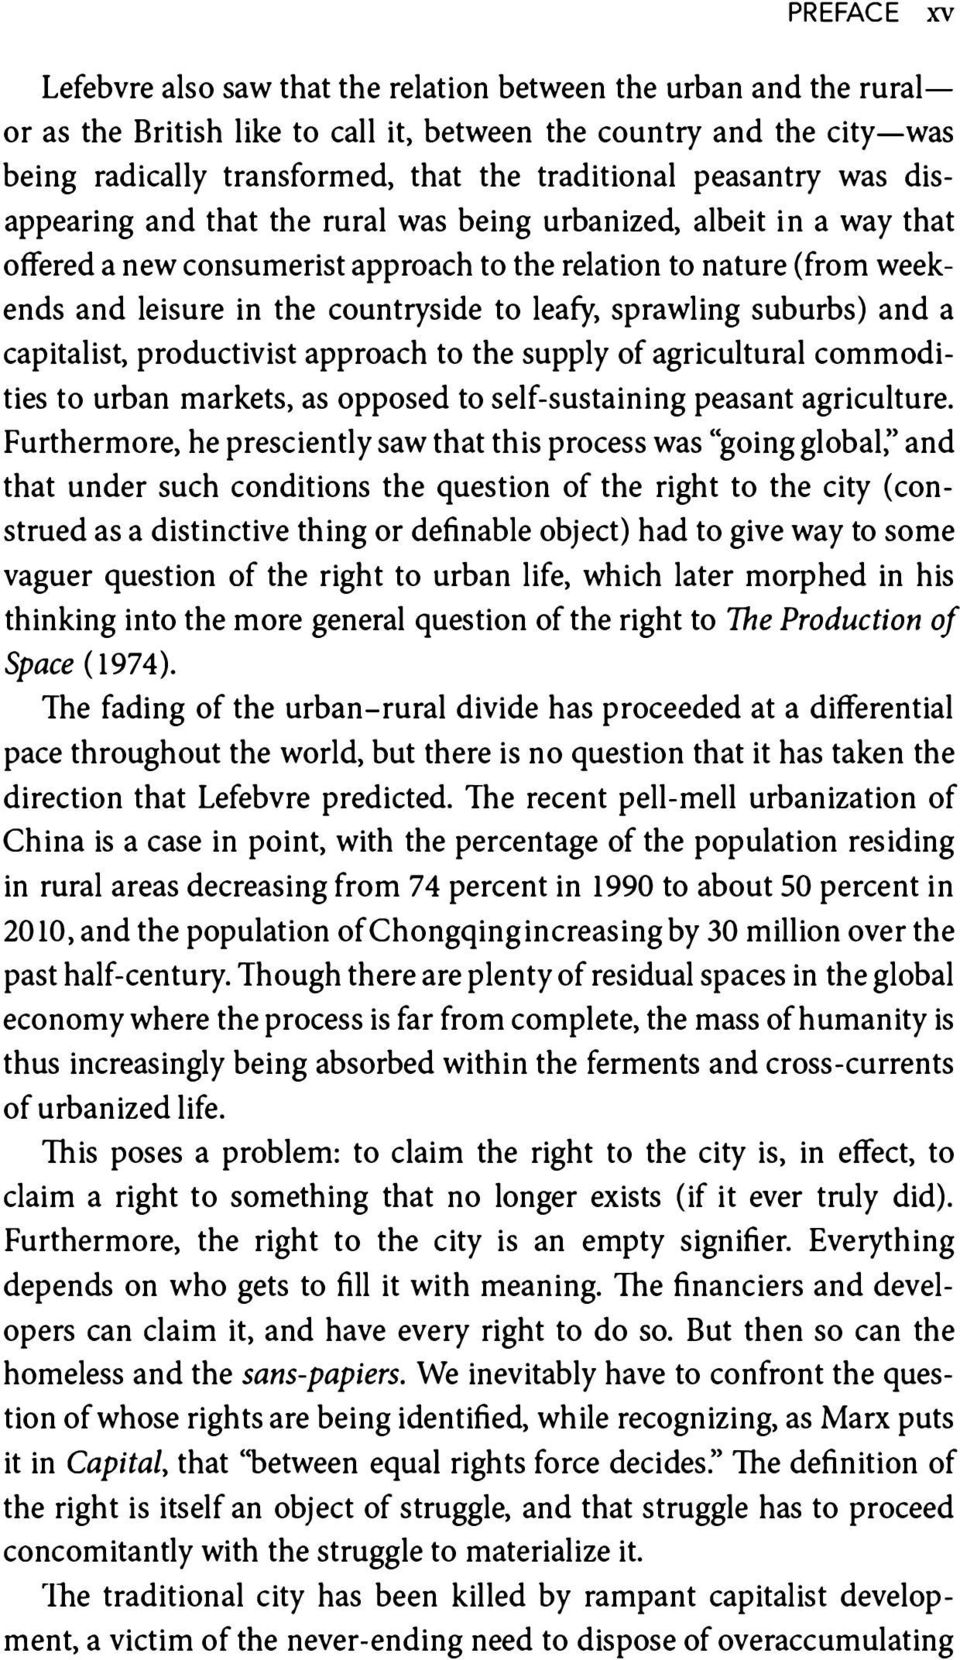 leafy, sprawling suburbs) and a capitalist, productivist approach to the supply of agricultural commodities to urban markets, as opposed to self-sustaining peasant agriculture.